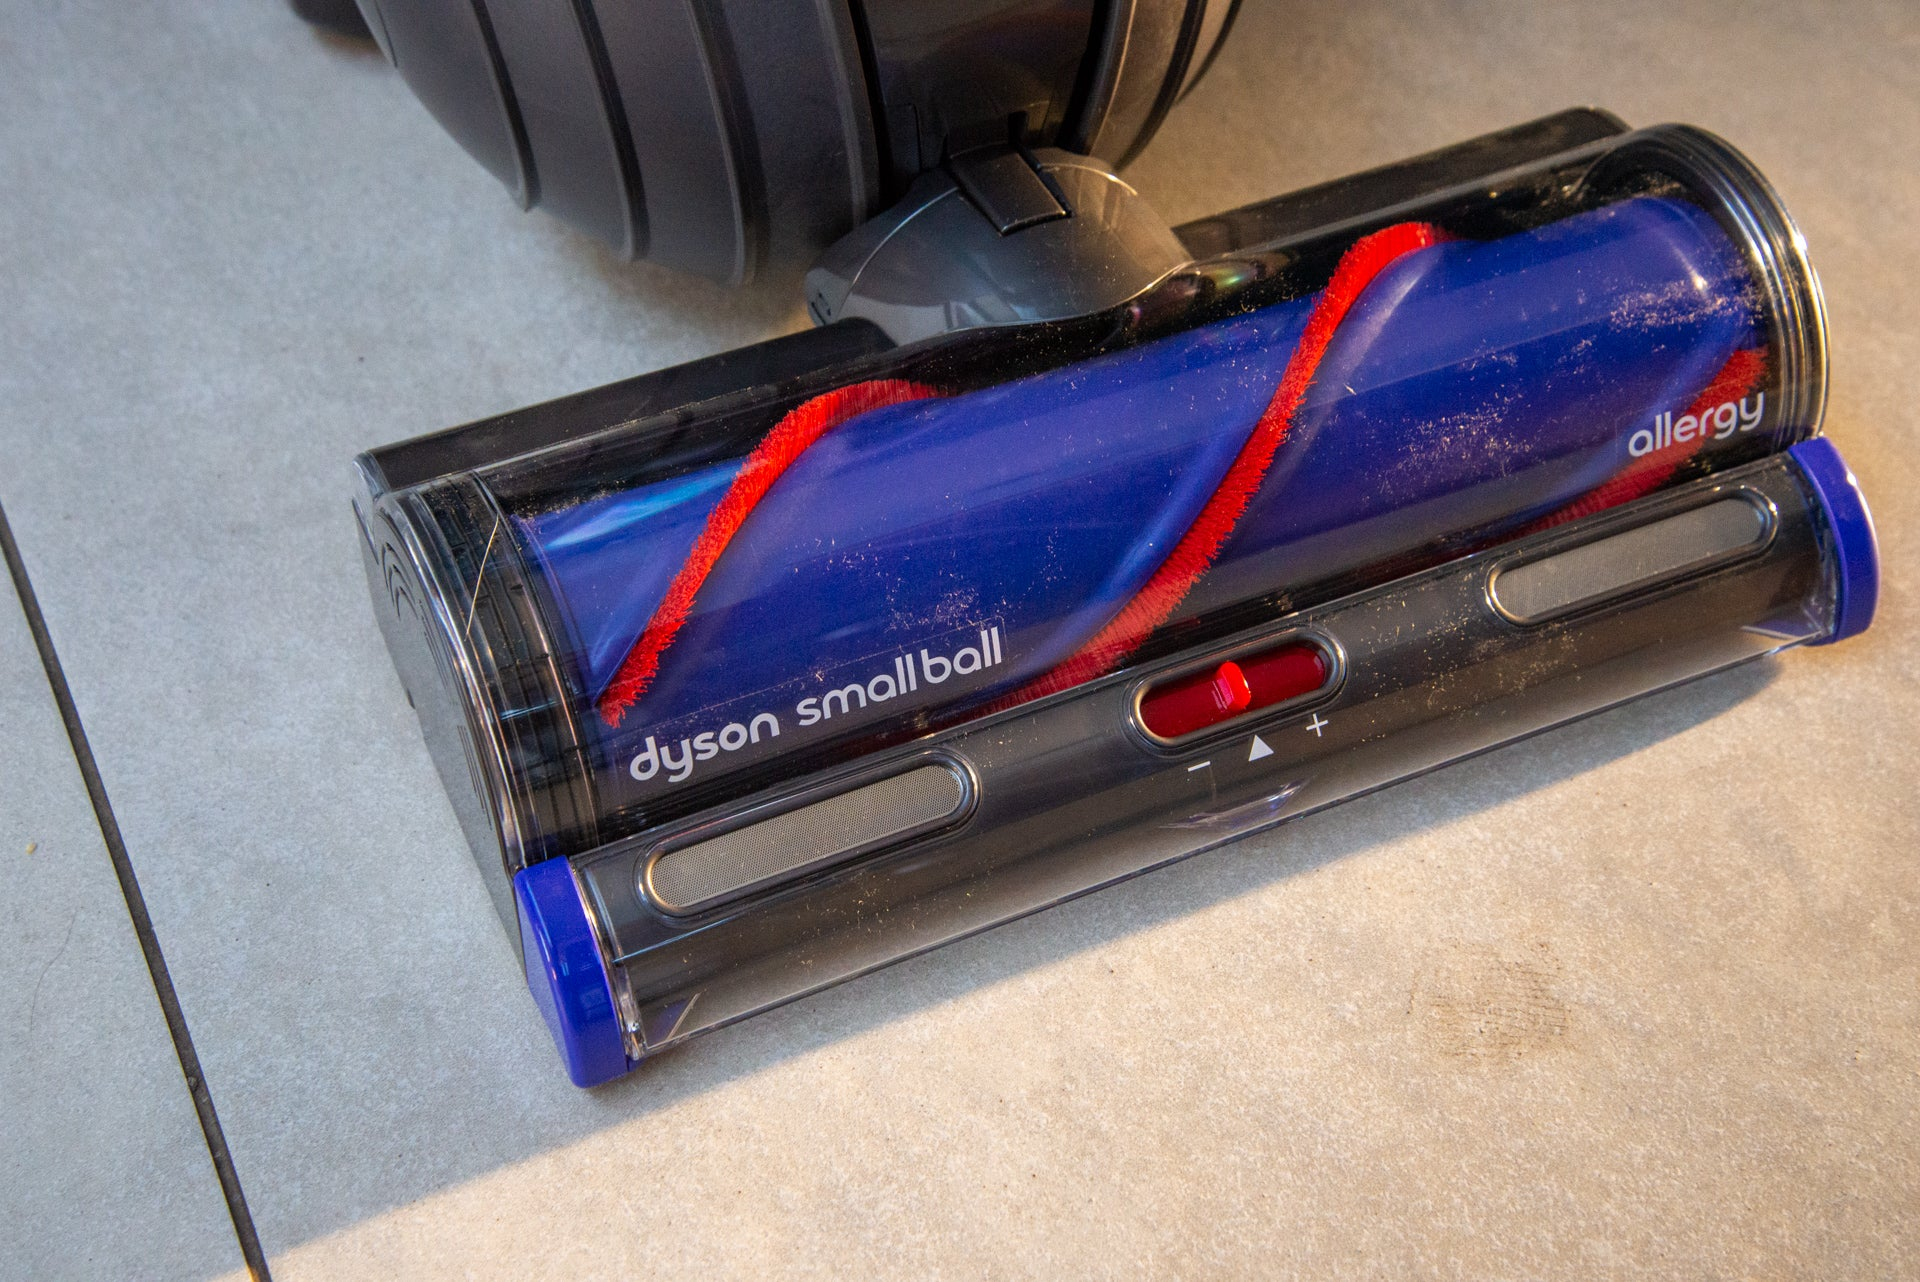 Dyson Small Ball Allergy floor brush attached